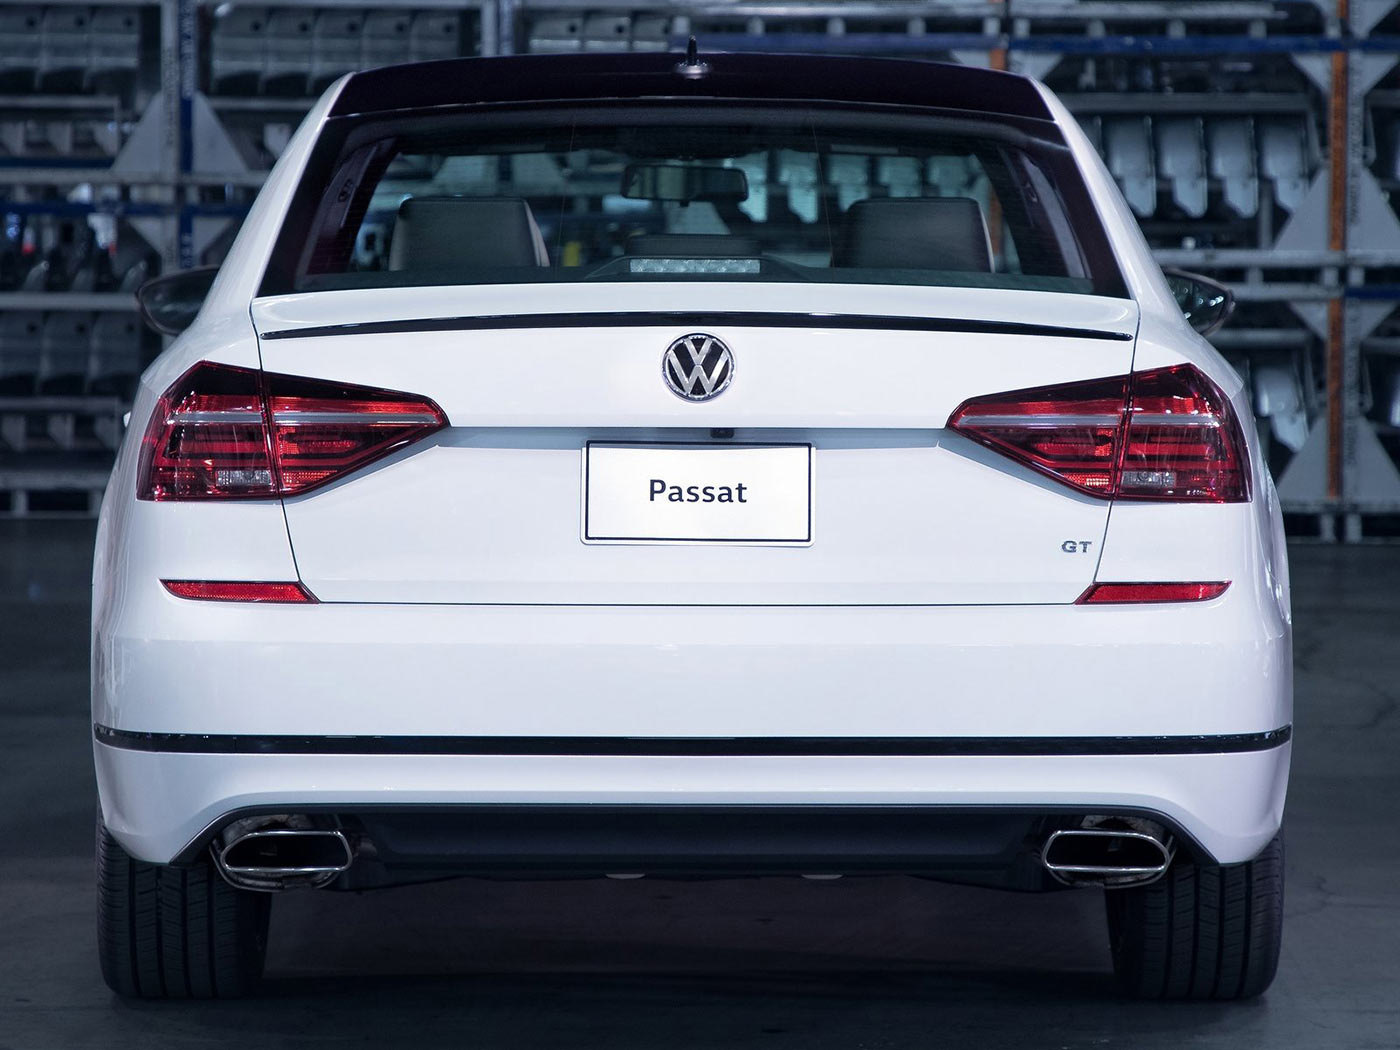 volkswagen-passat-gt-us-version-2018-1600-07.jpg